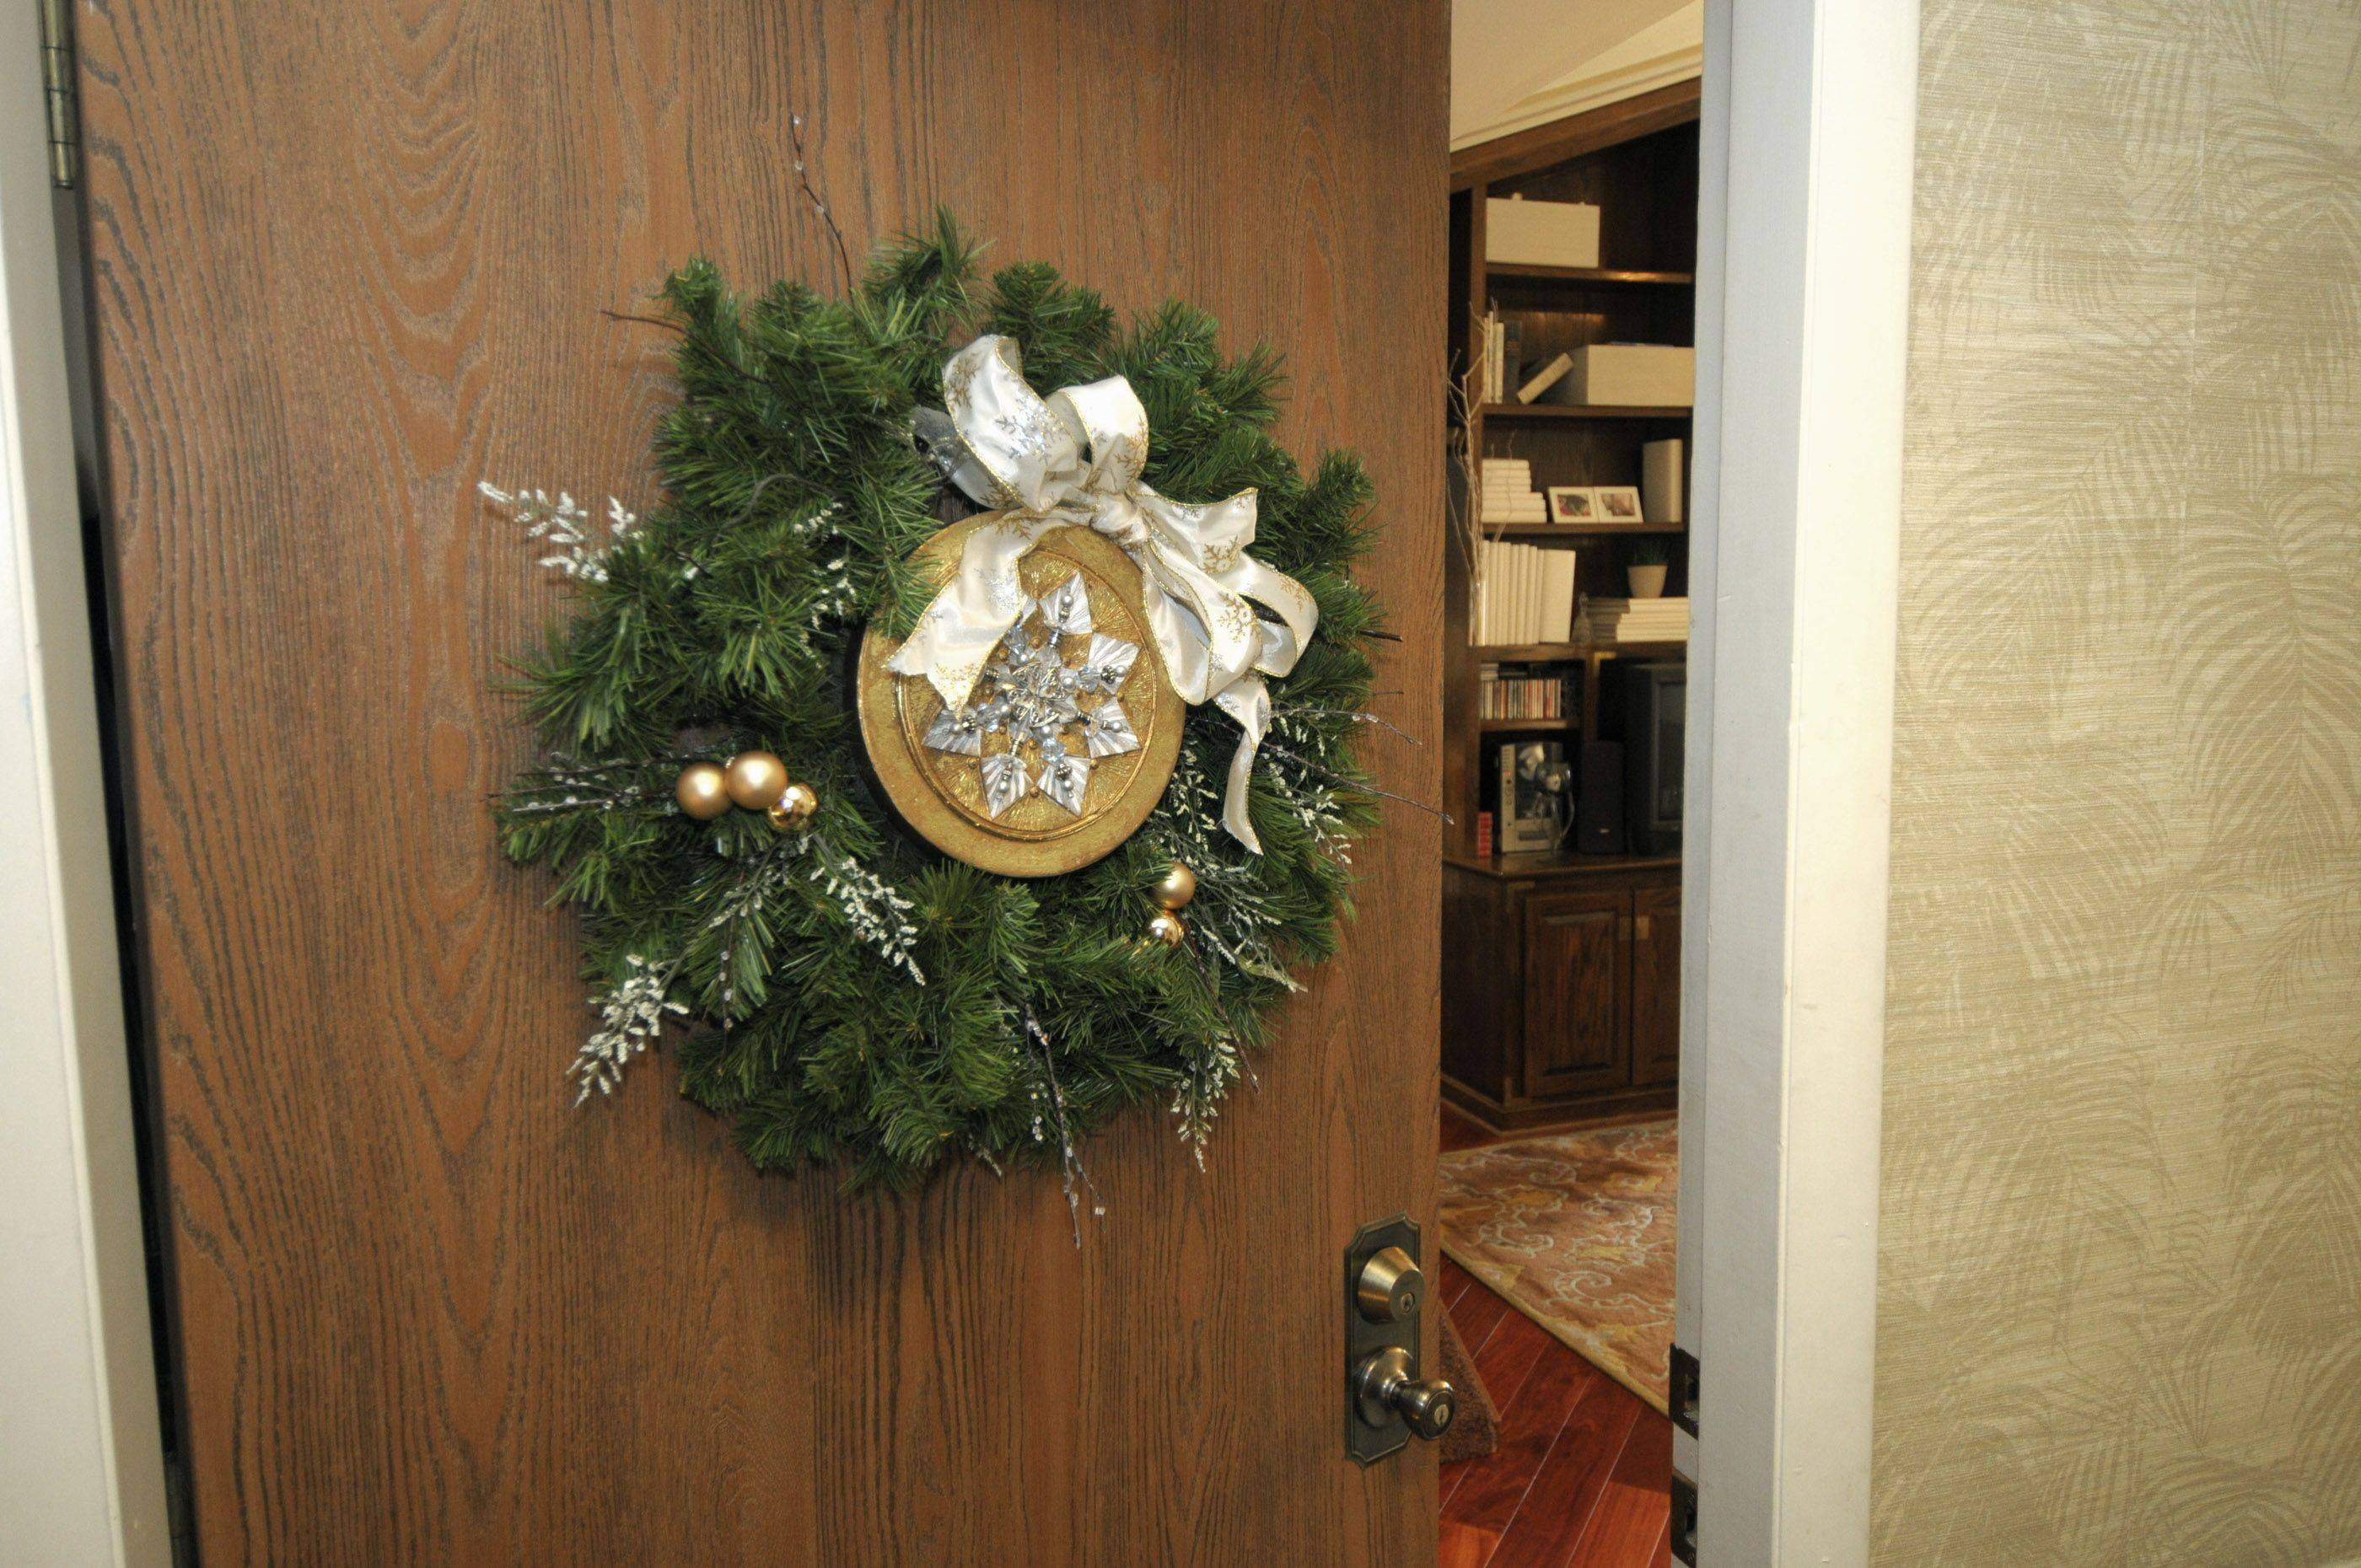 Janet Davidsen used a round cardboard box as the center of this decoration for her door in Wheaton.